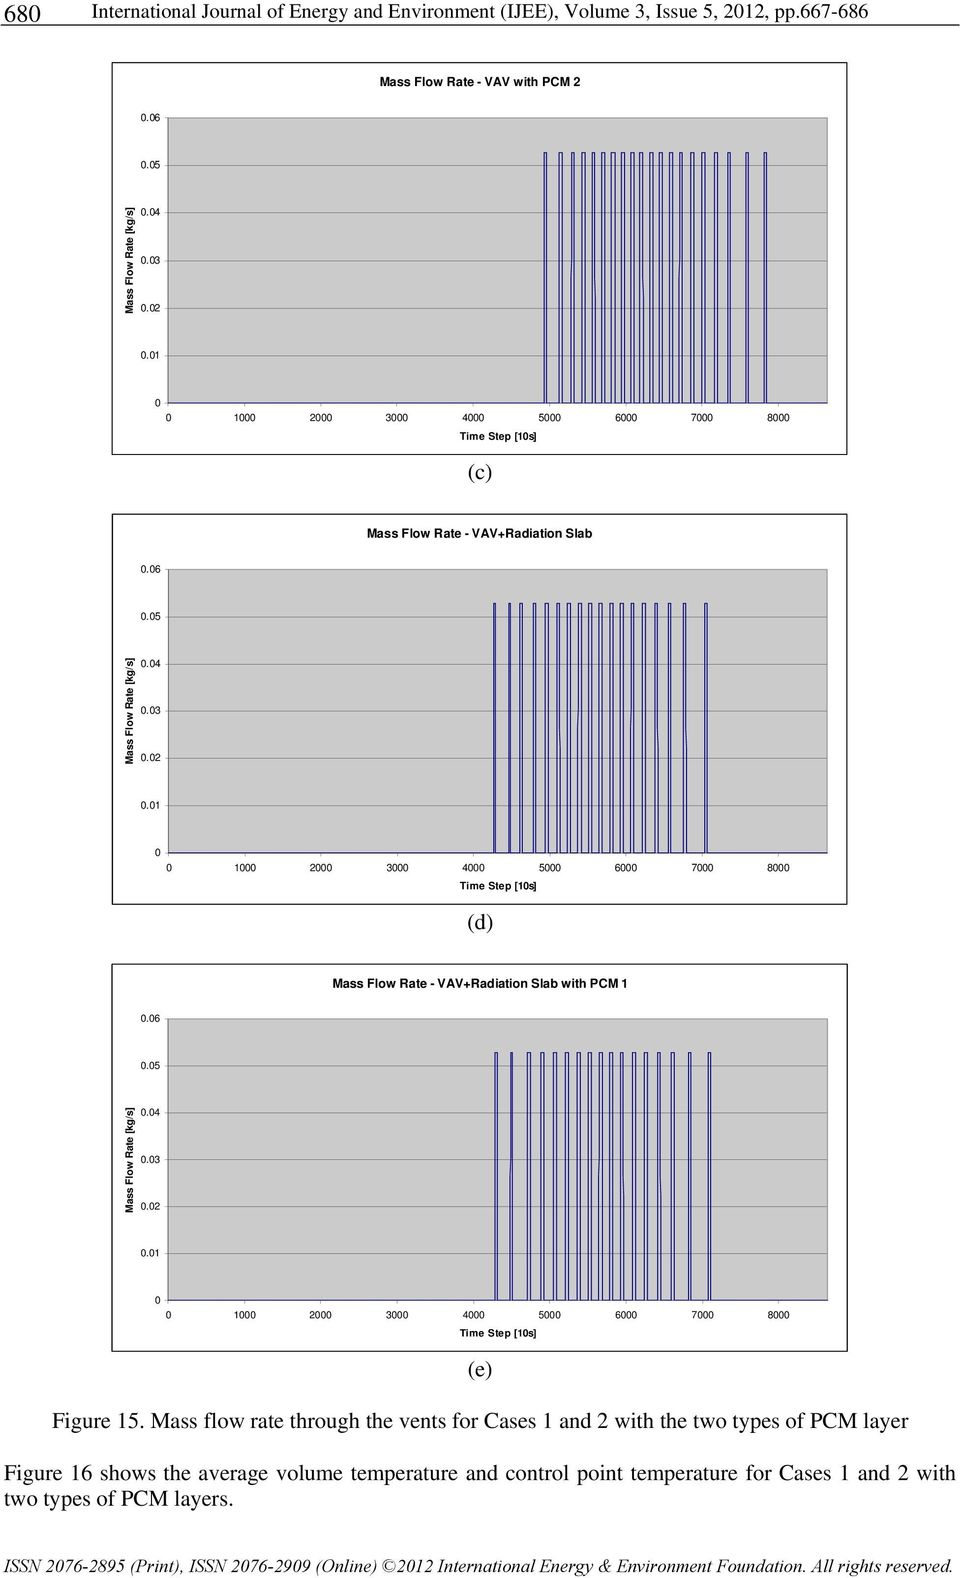 Mass flow rate through the vents for Cases 1 and 2 with the two types of PCM layer Figure 16 shows the average volume temperature and